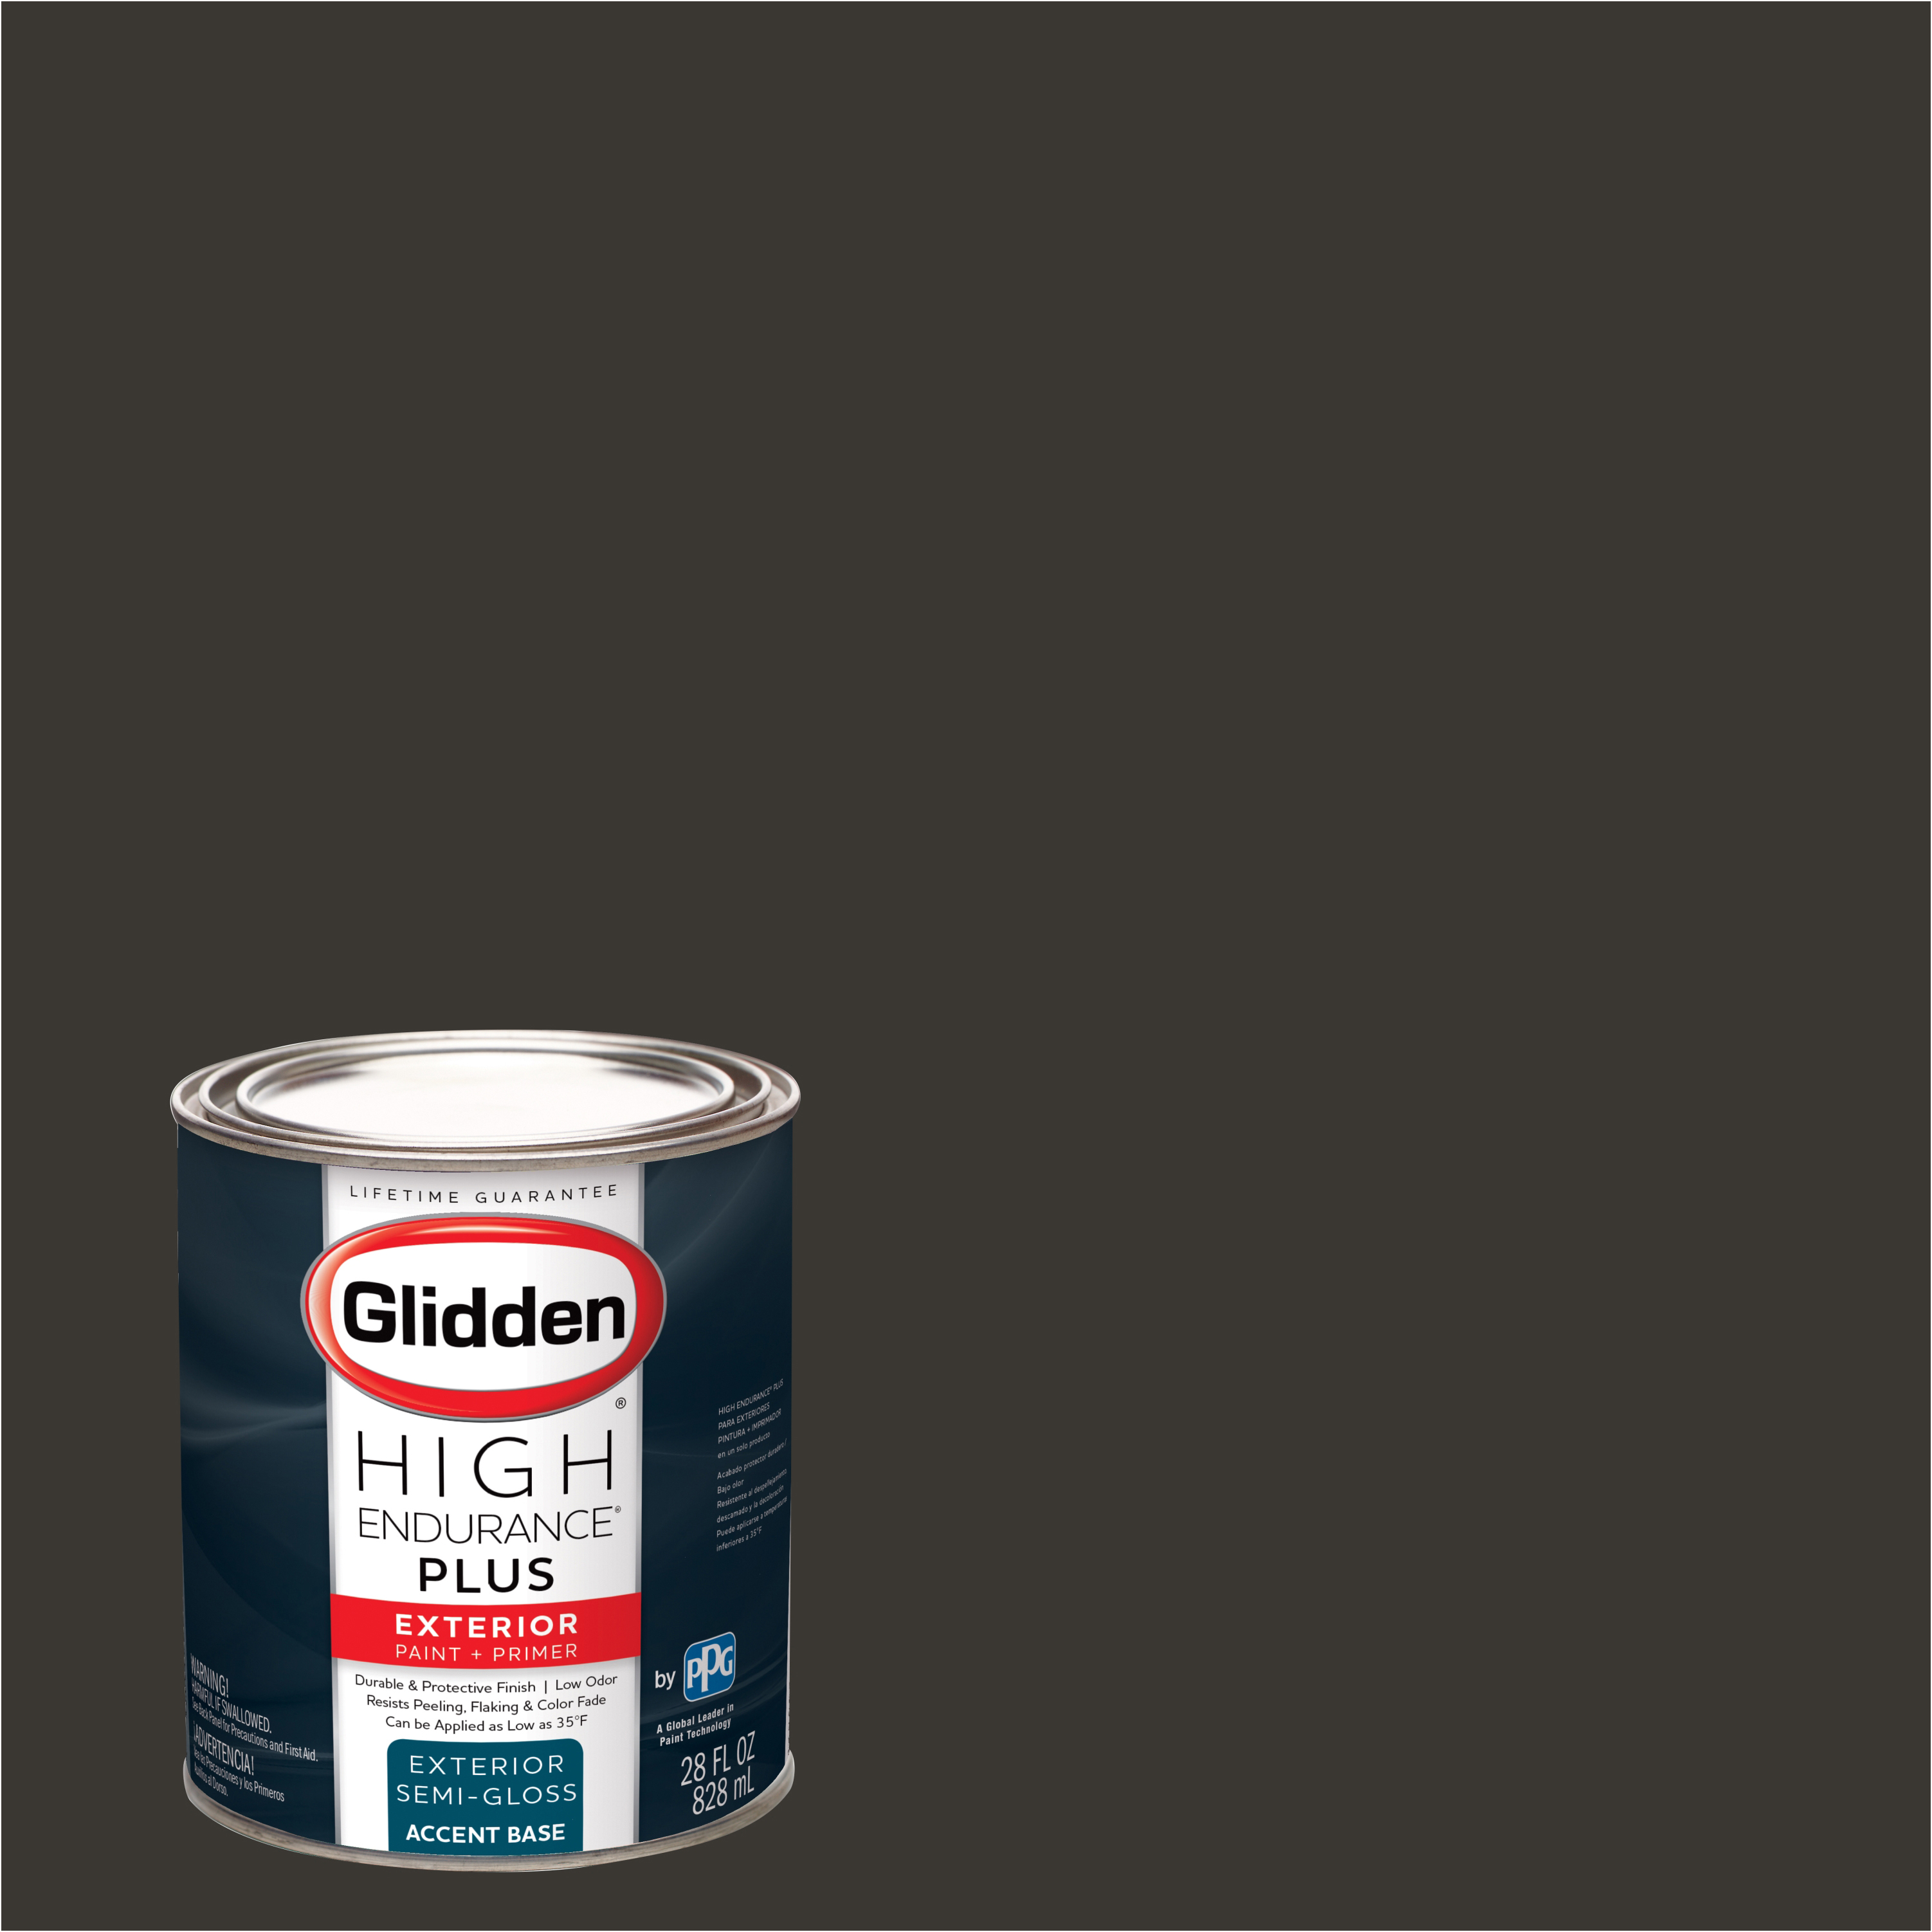 Glidden High Endurance Plus Exterior Paint and Primer, Western Charcoal, #50YR 06/041